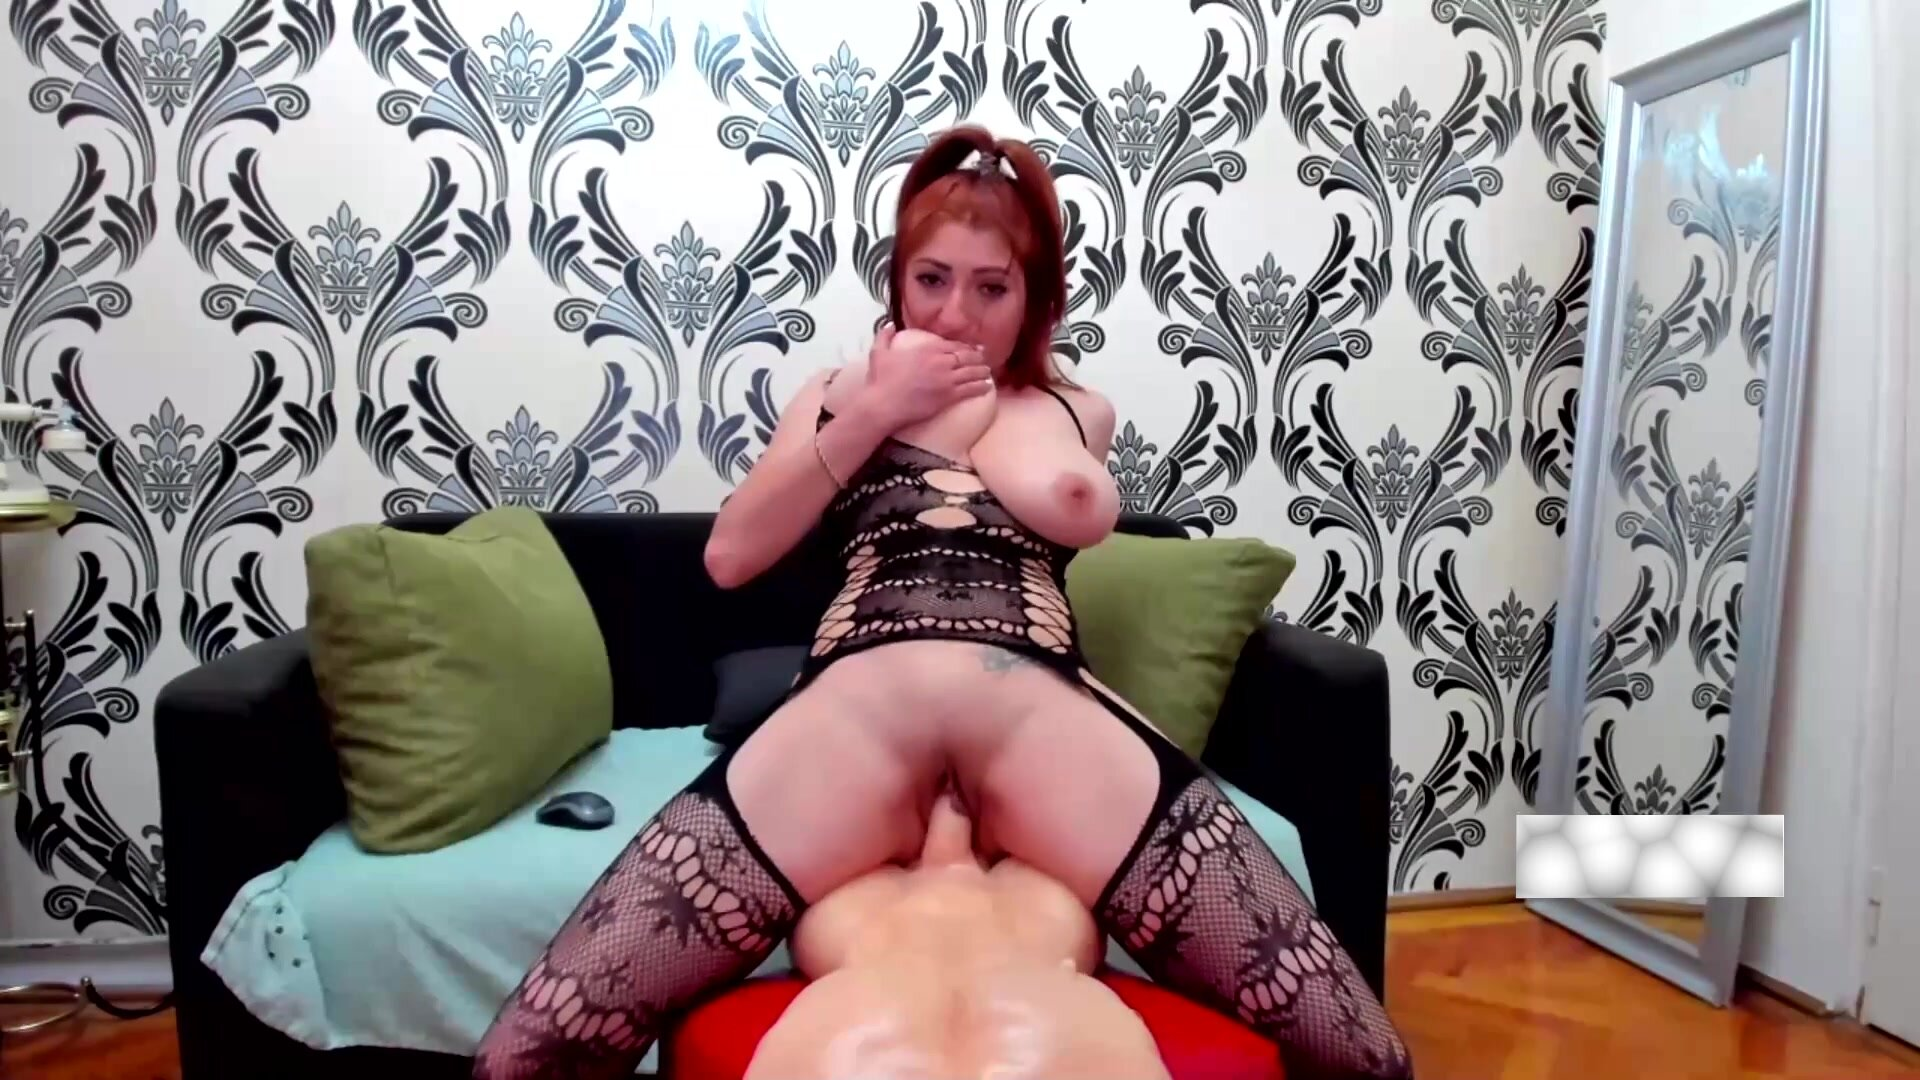 Horny housewife with huge breasts riding on dildo